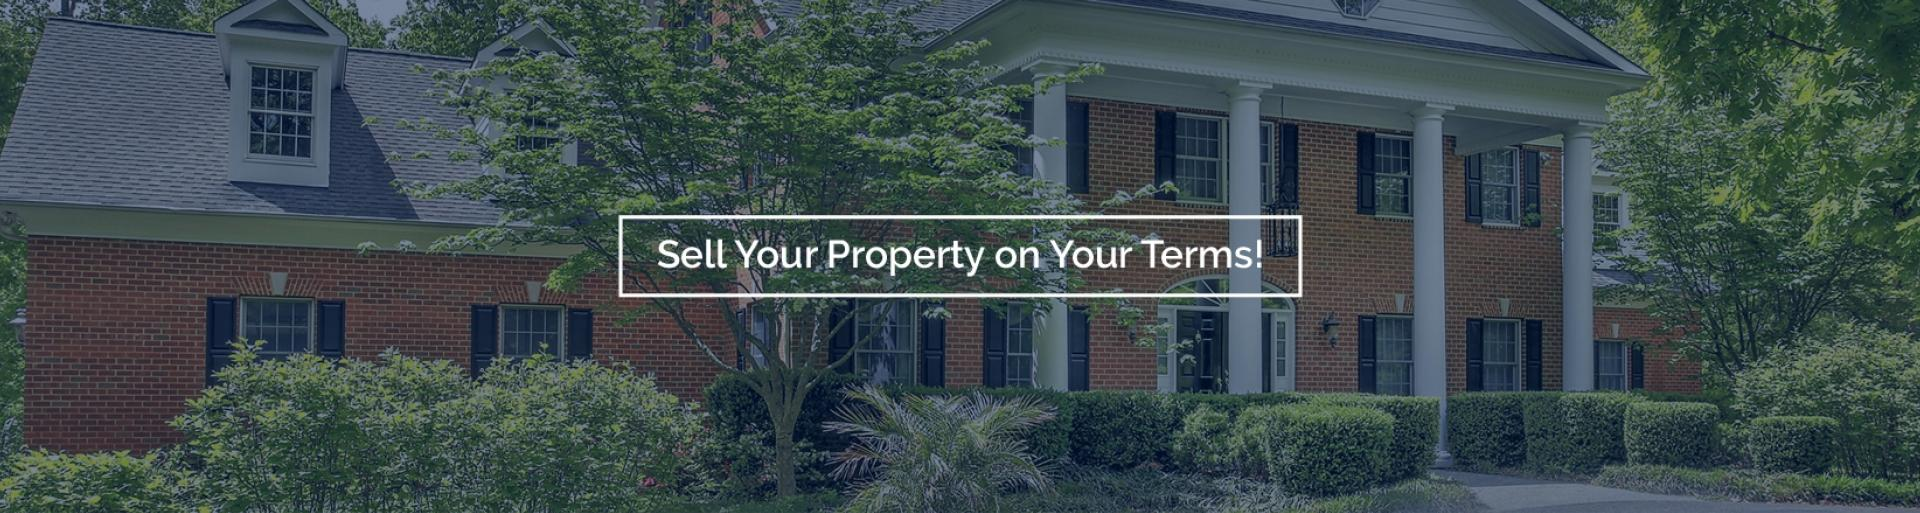 Sell Your Property on Your Terms!